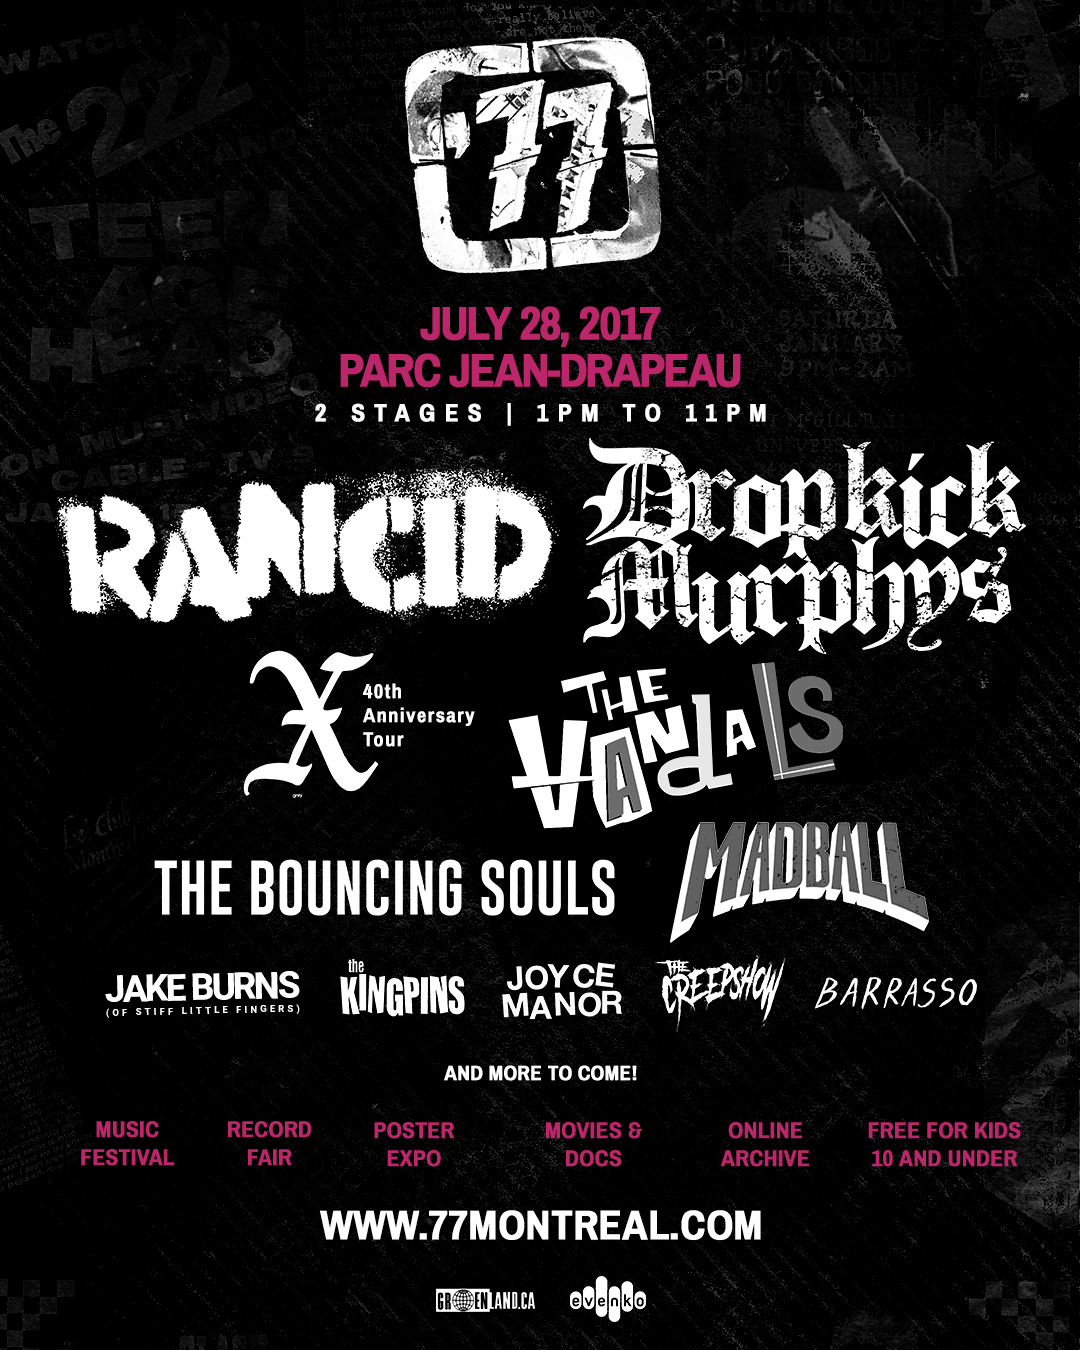 Montreal's '77 Fest to feature Rancid, Dropkick Murphys, X, The Bouncing Souls, The Vandals, Madball, Joyce Manor and more (+ win tix!) jake burns, stiff little fingers, the kingpins, the creepshow, barrasso, new, lineup, montreal, parc jean drapeau